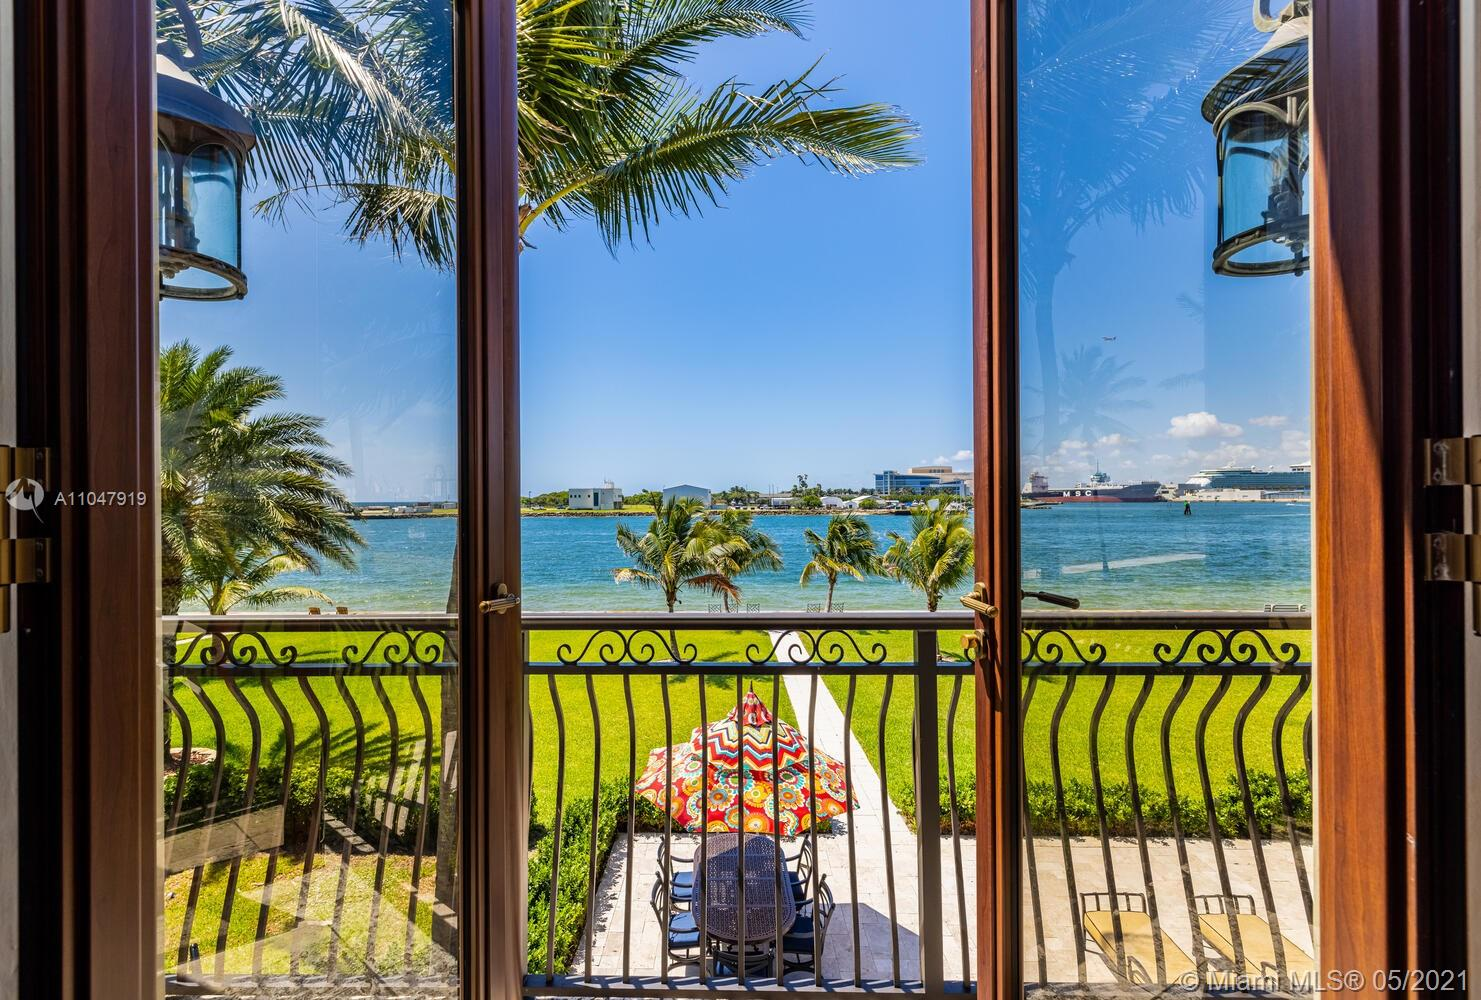 Just minutes from the heart of Ft. Lauderdale, this 4 Bedroom/5 Bathroom estate has floor the ceiling windows that look out over the Intracoastal and ocean. Exquisite interior featuring large dine-in kitchen, state of the art gym, and 2 master bedrooms upstairs with unobstructed ocean views. Available for weekly, monthly, and annual. A 44ft Zeelander Yacht is also offered just moments away for use while renting this estate (additional fees apply).